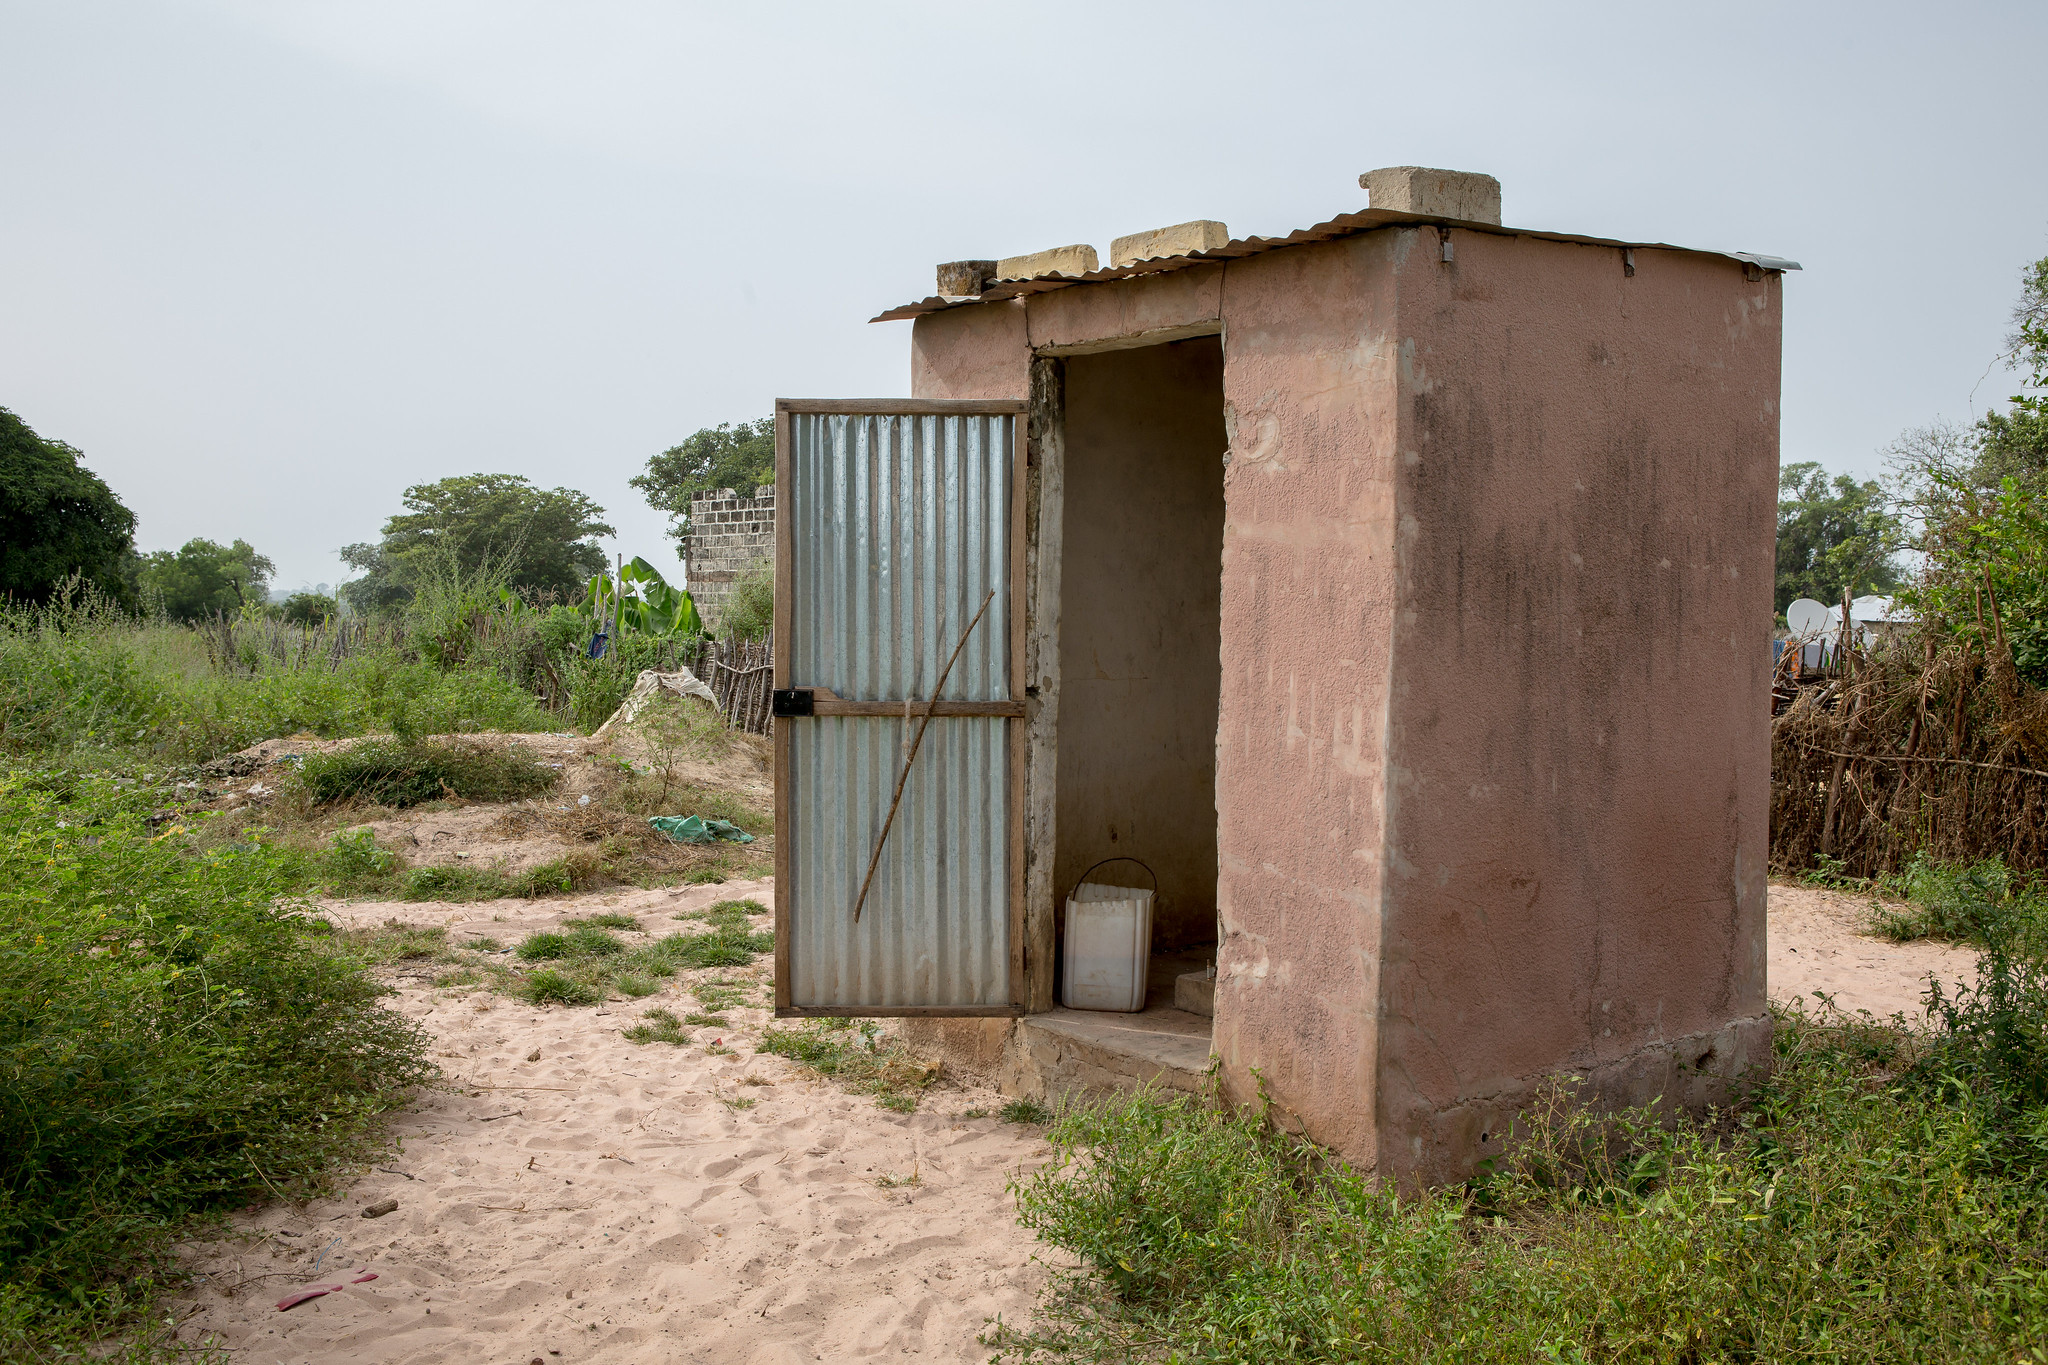 Fixing the financial plumbing to increase investments in sanitation